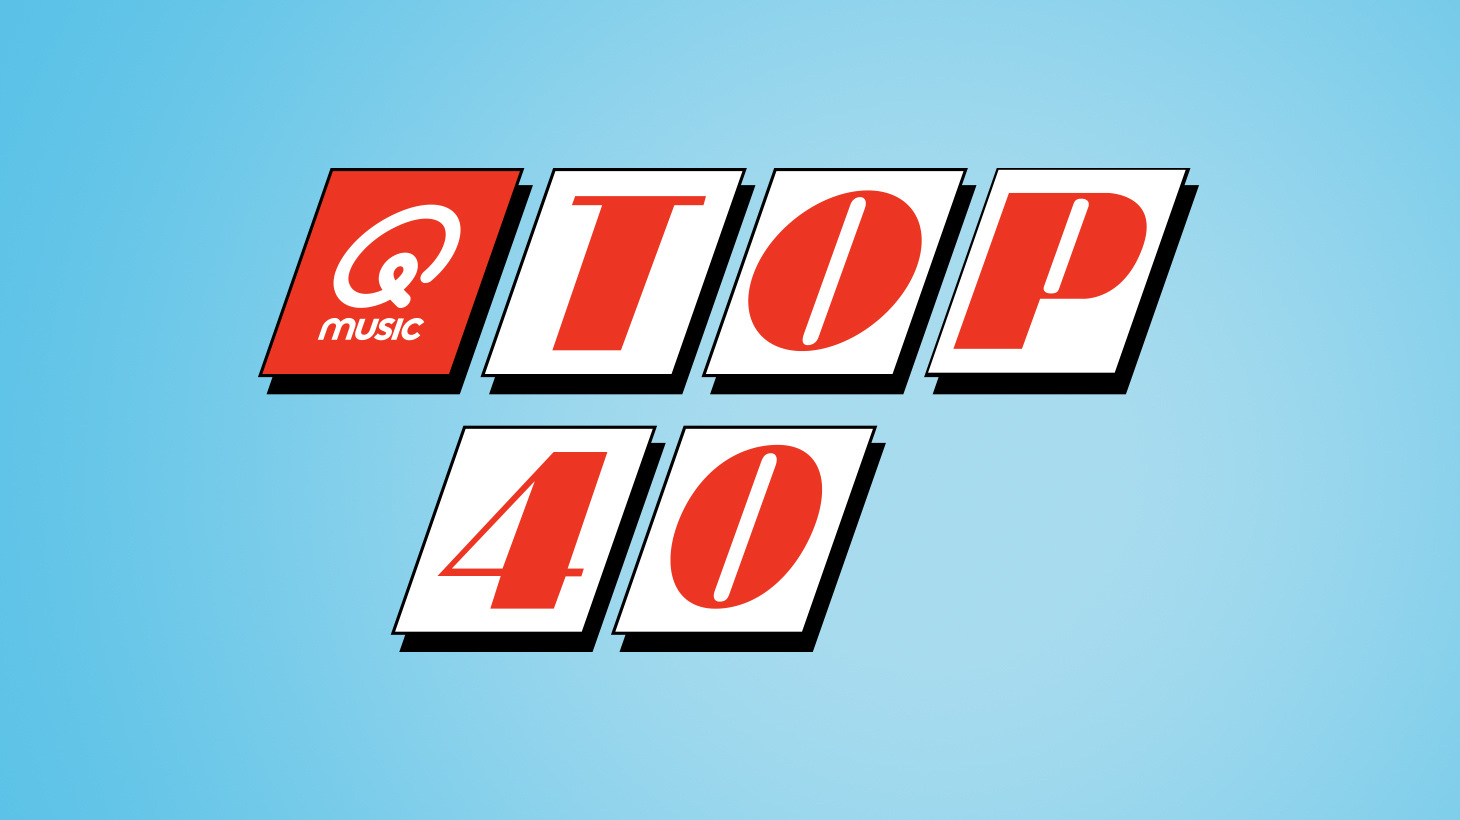 Dj header programma top40